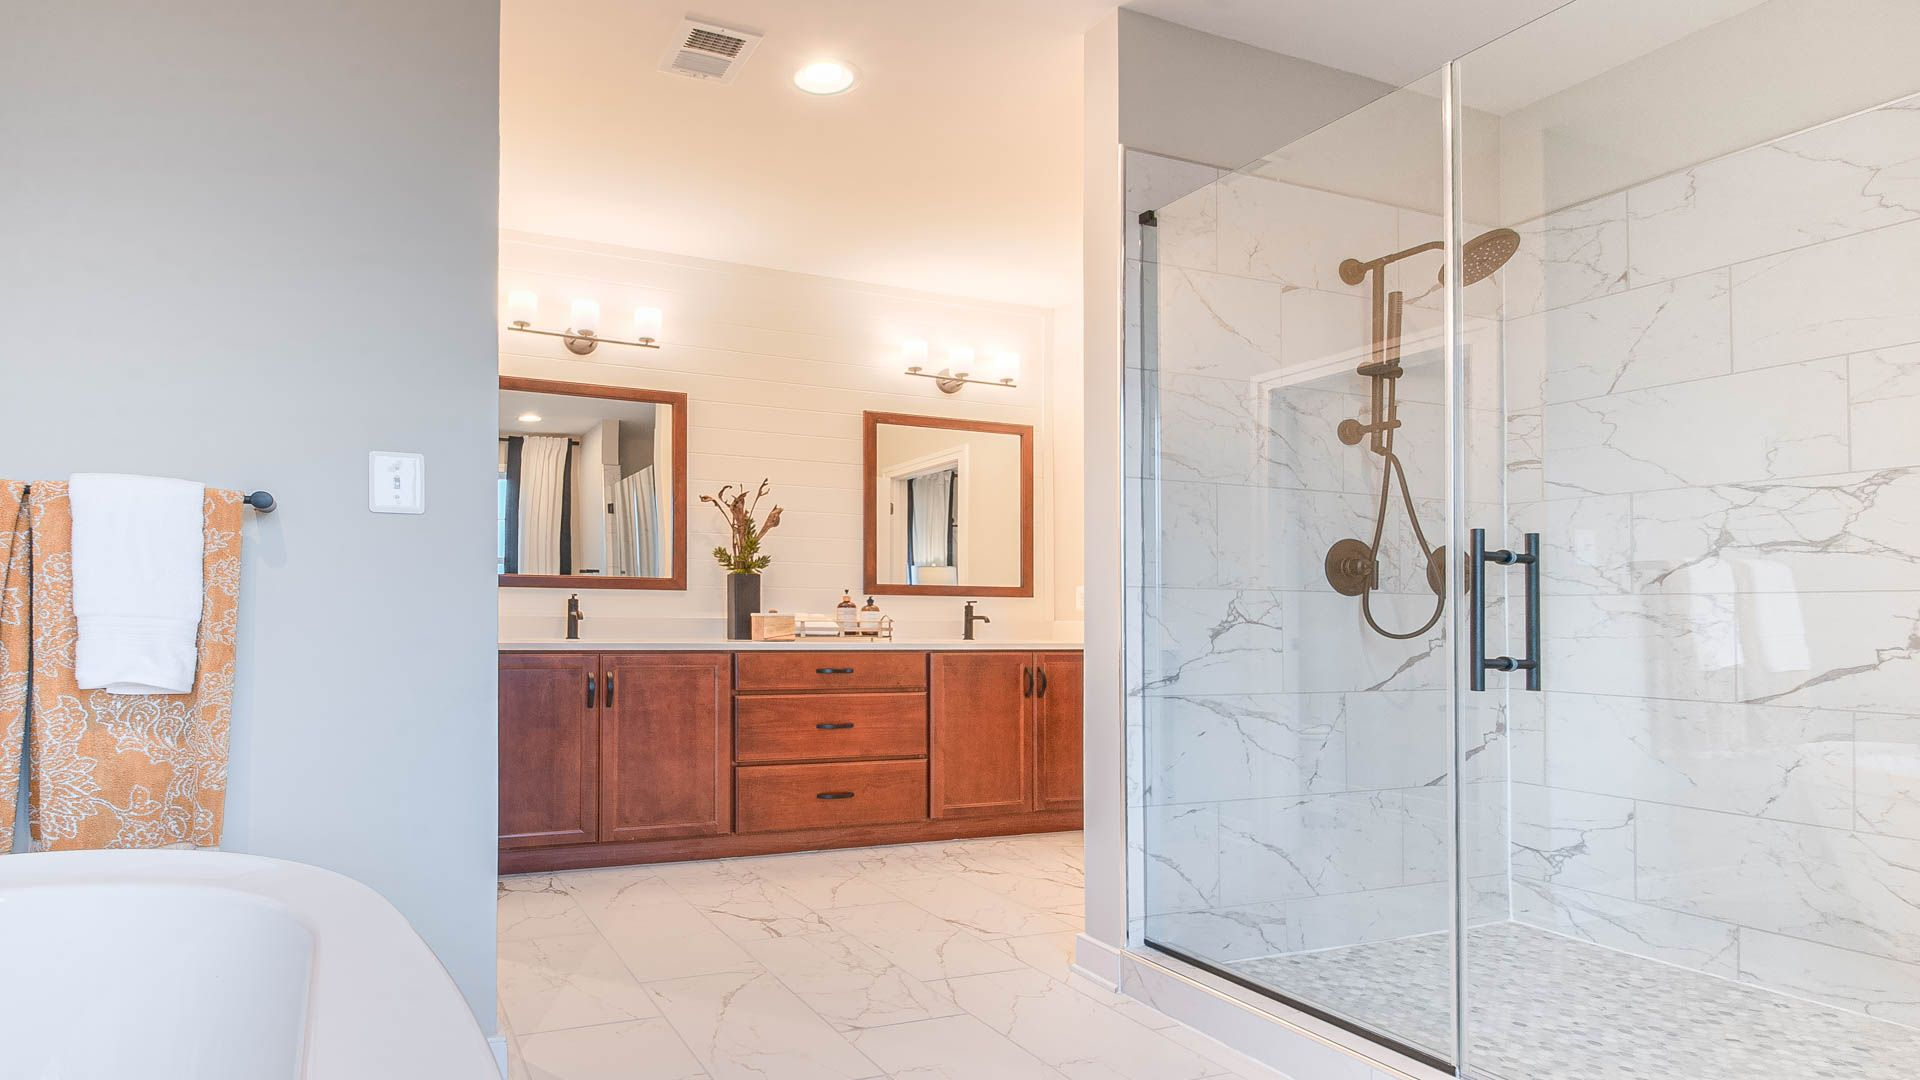 'Landsdale' by Wormald Homes - D.C. Metro Area in Washington